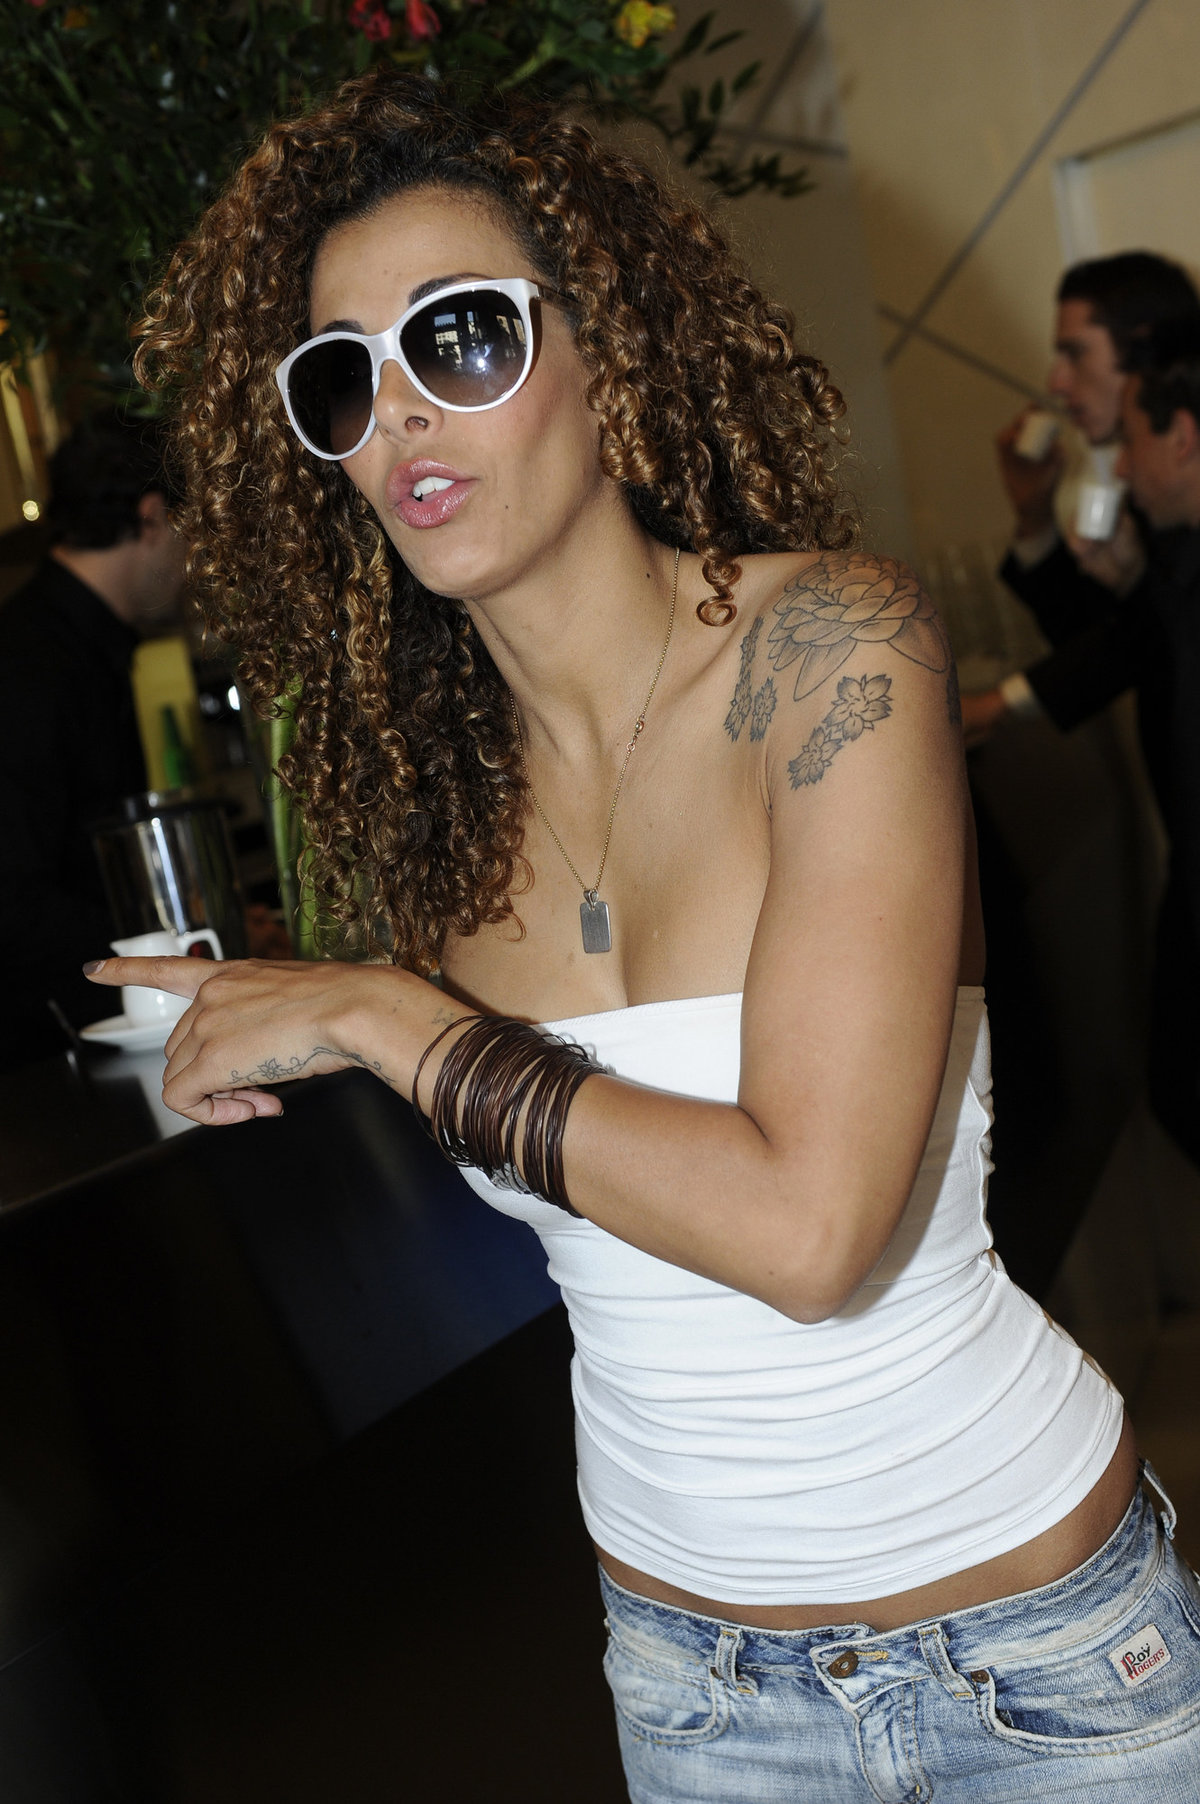 Nora Amile - VIP on Board event in Milan 5/19/11